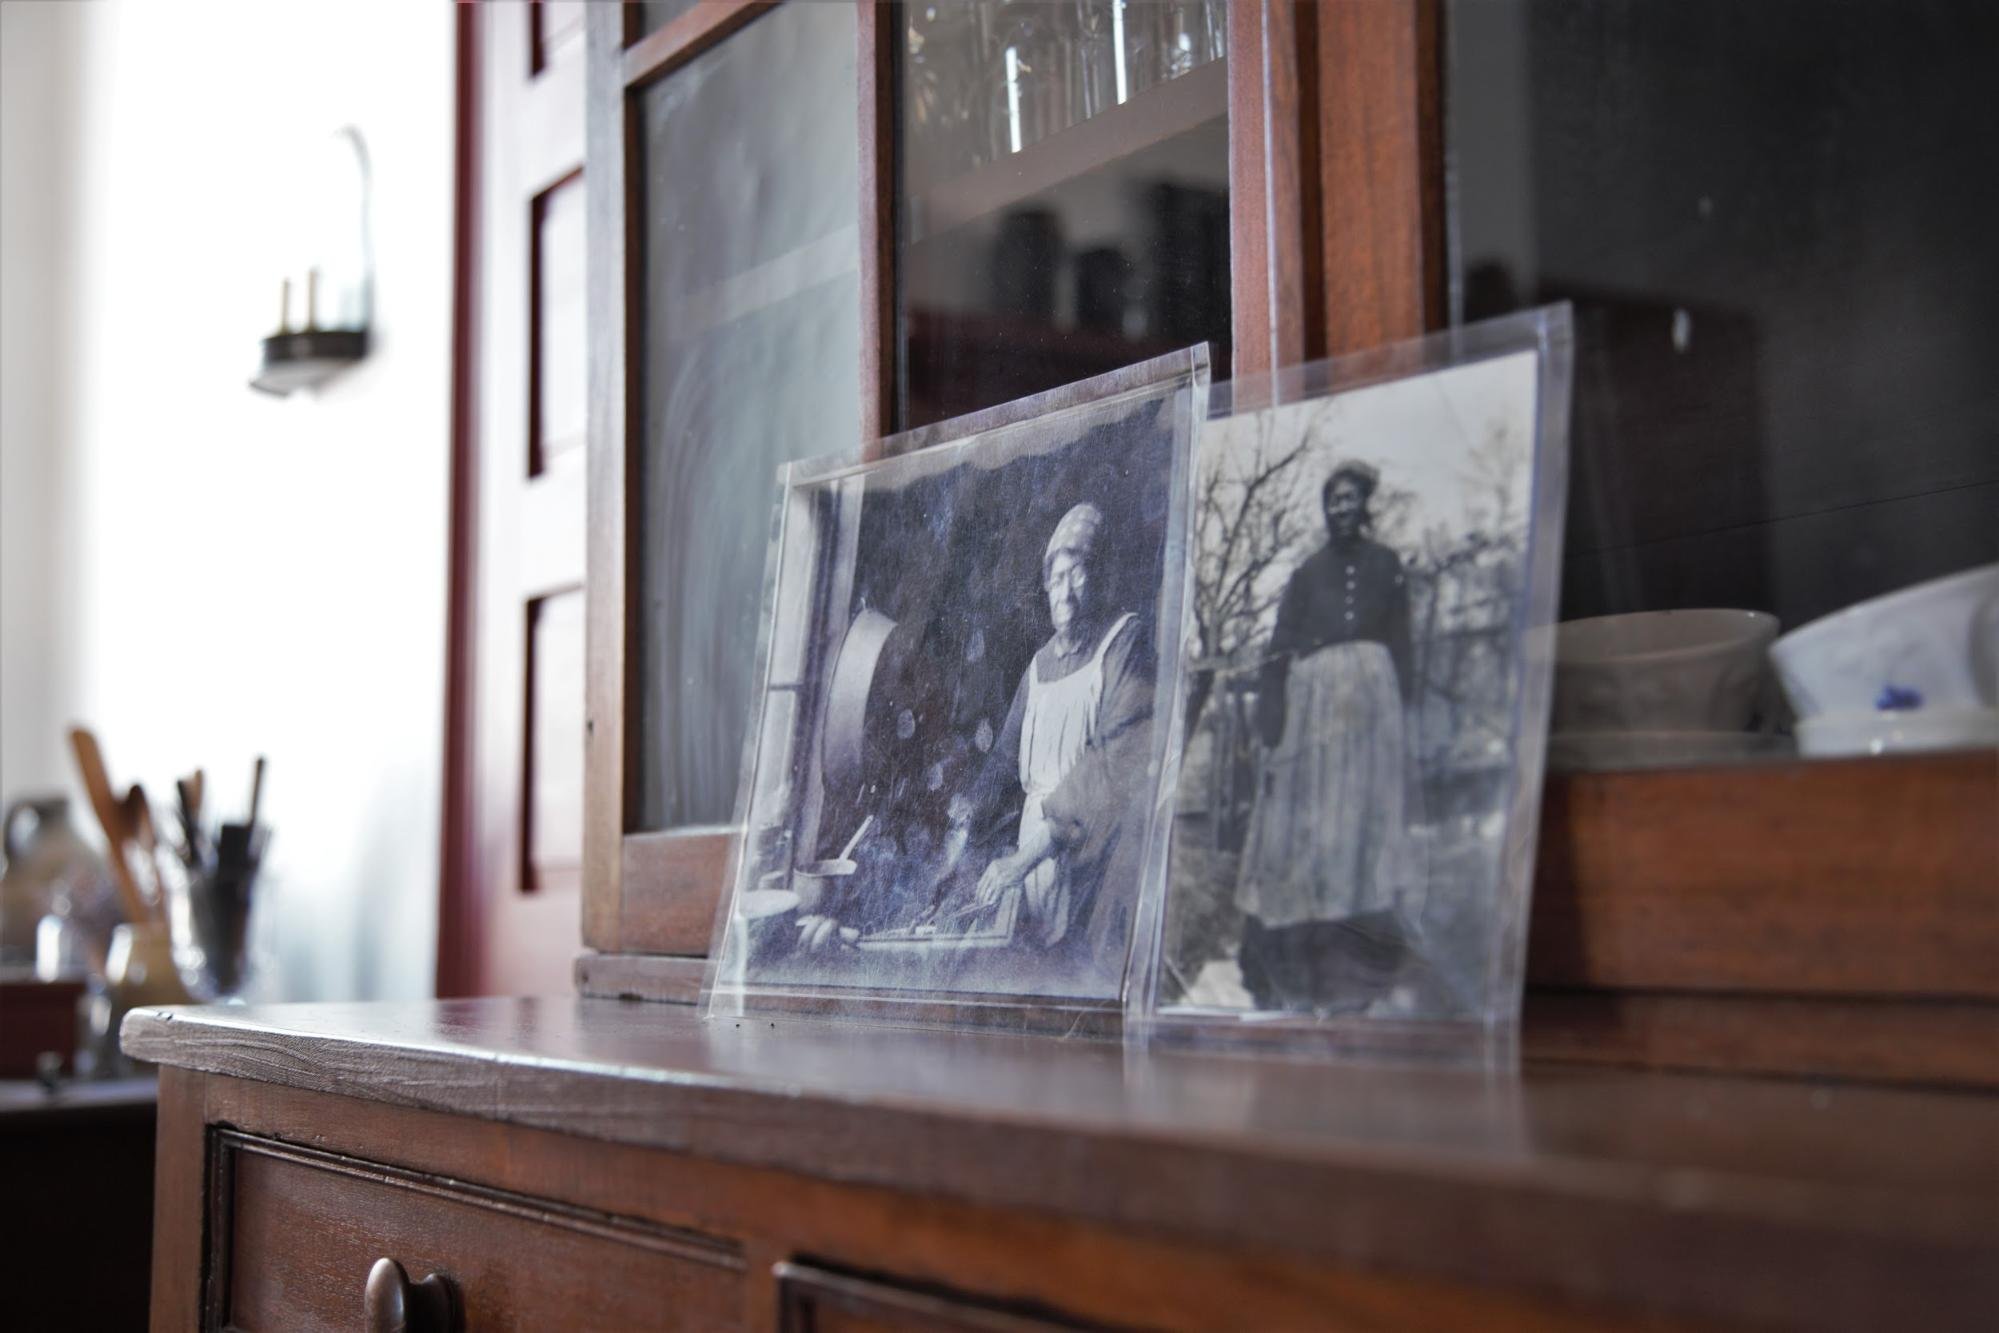 Photography of vintage photographs displayed inside a historic house museum.